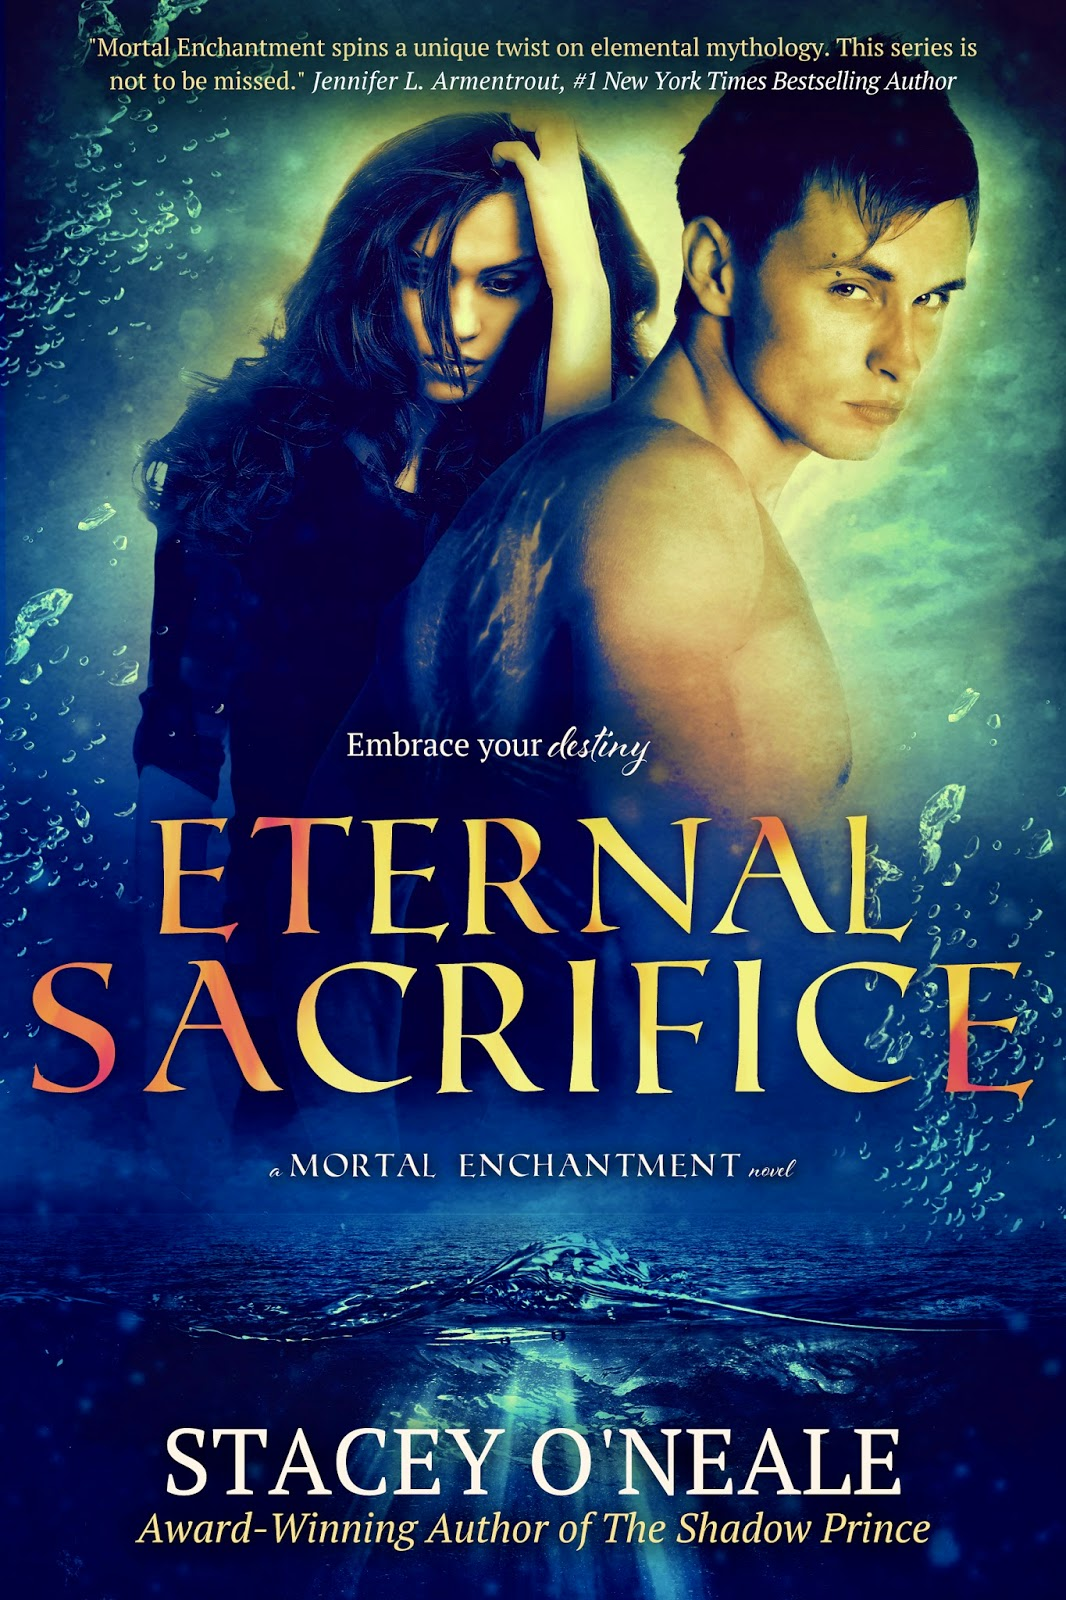 https://www.goodreads.com/book/show/23446593-eternal-sacrifice?from_search=true&search_exp_group=group_a&search_version=service